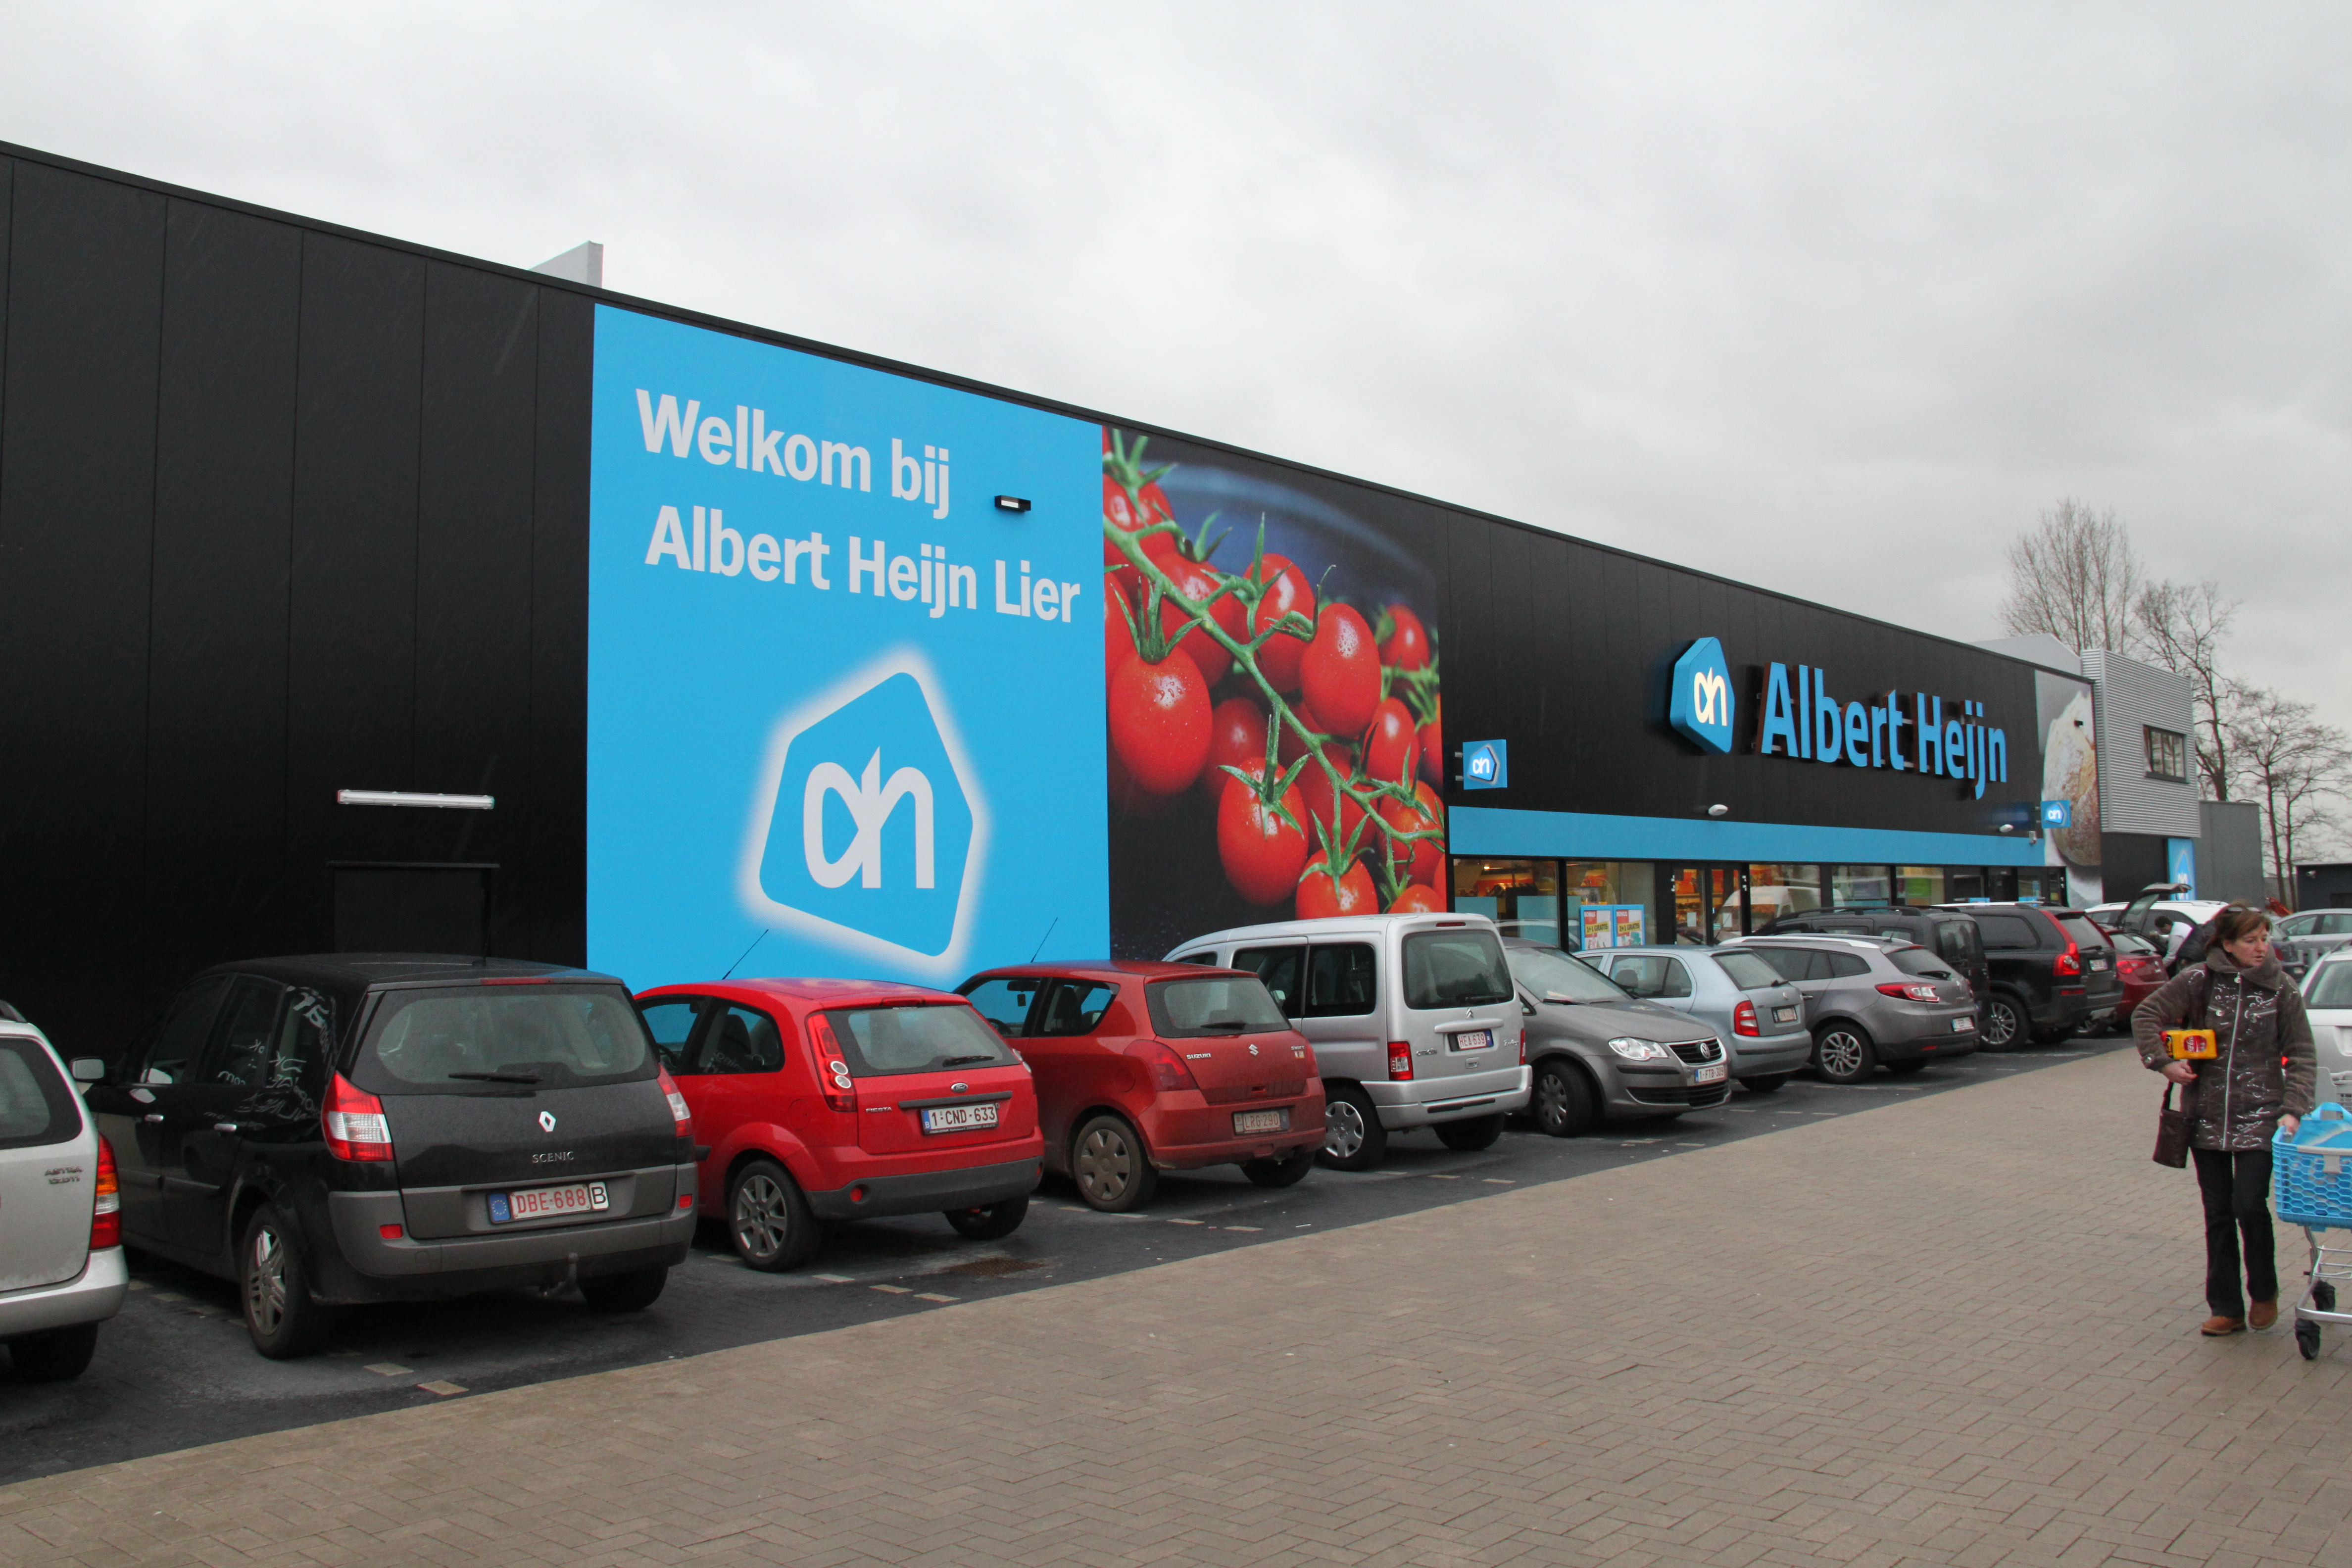 albert heijn history The top two food retailer formulas in the netherlands, albert heijn and  be on  regular lager beer often from dutch, german or belgian origin.